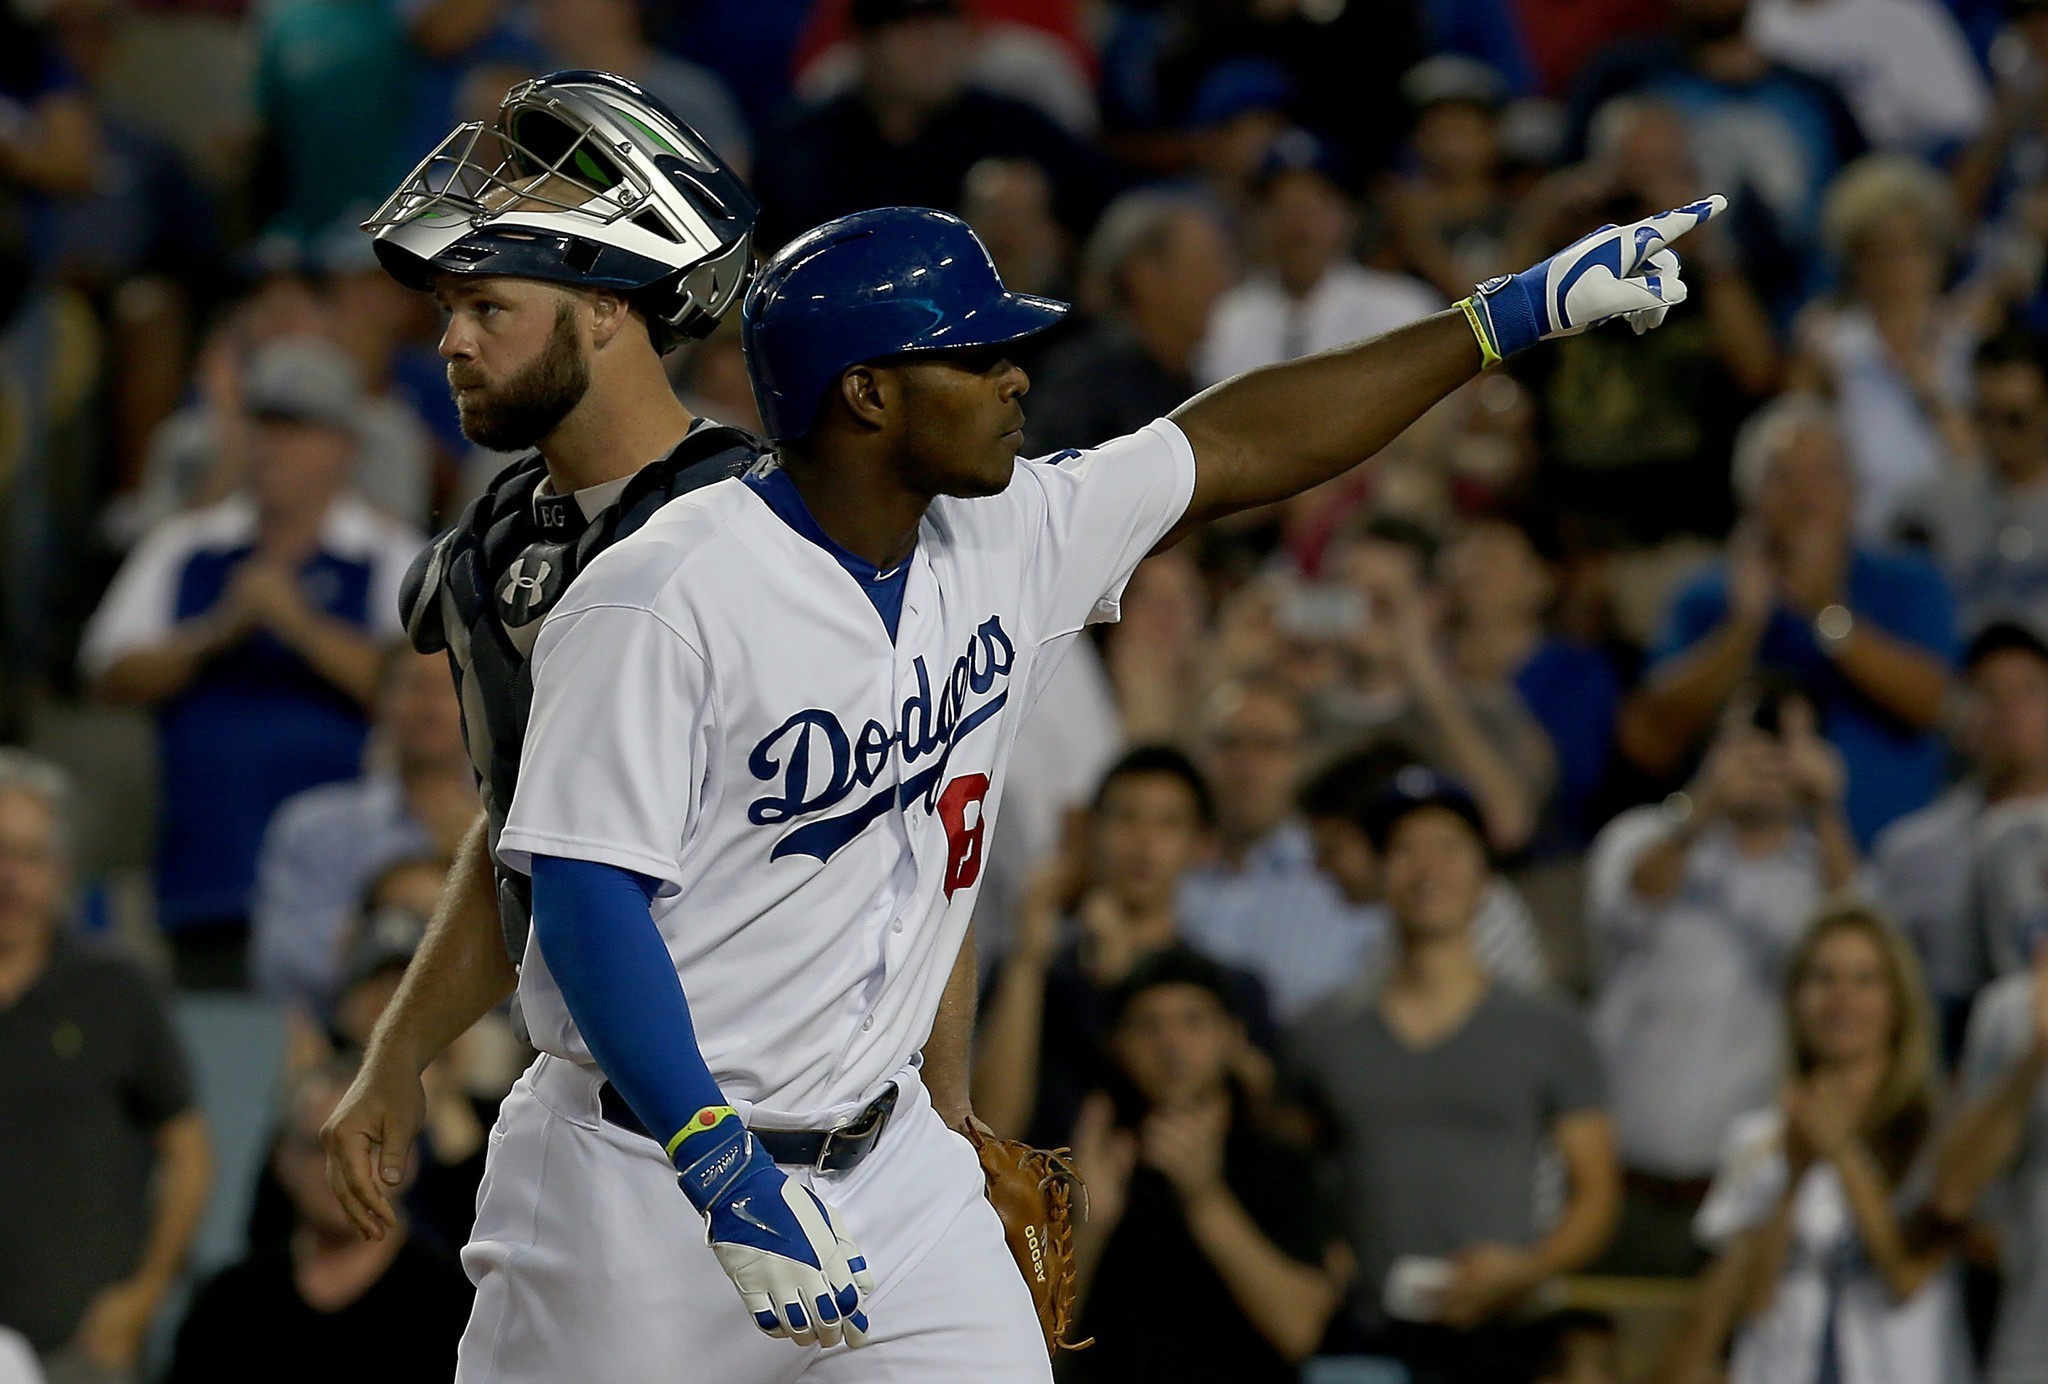 Dodgers complete sweep of Atlanta Braves in 2-1 win